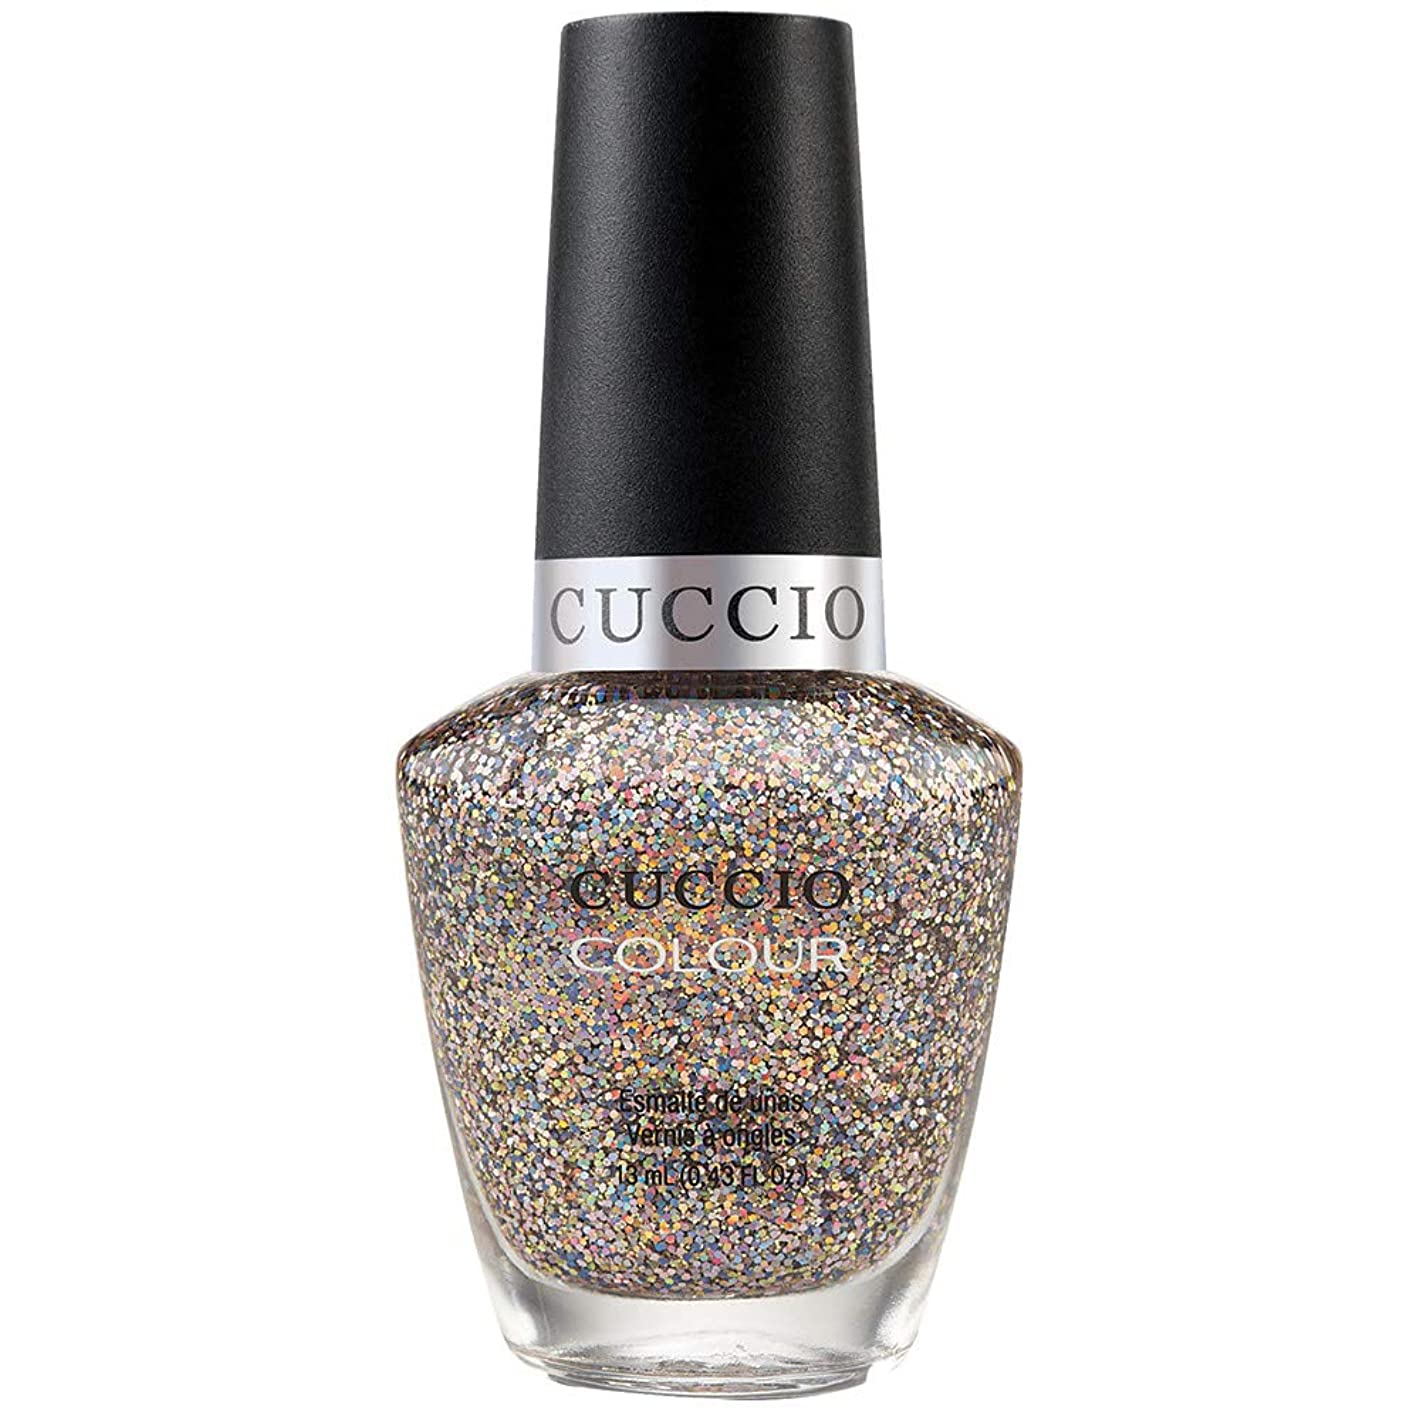 レースしなやかダンスCuccio Colour Veneer LED/UV Gel Polish - Bean There Done That! - 0.43oz / 13ml